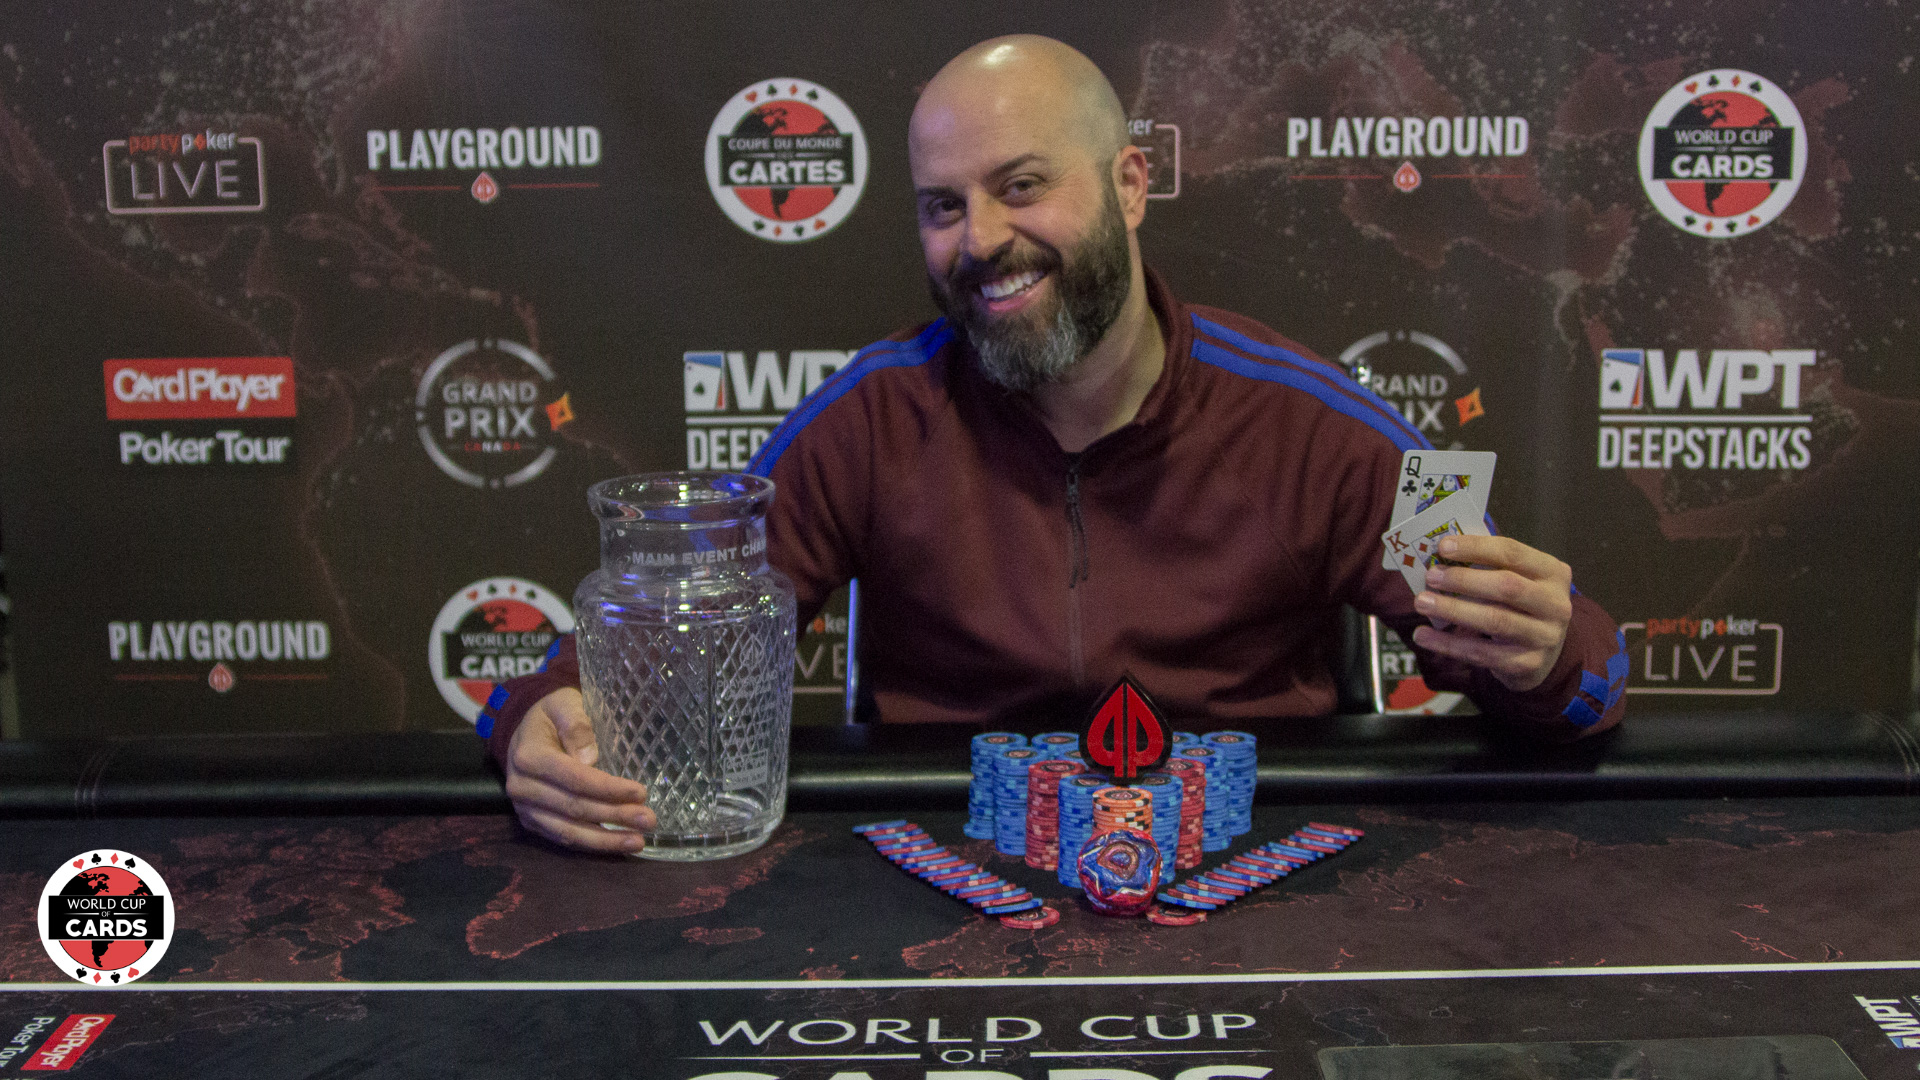 Le champion de l'Évènement card Player poker Tour: Danny Ibrahim!